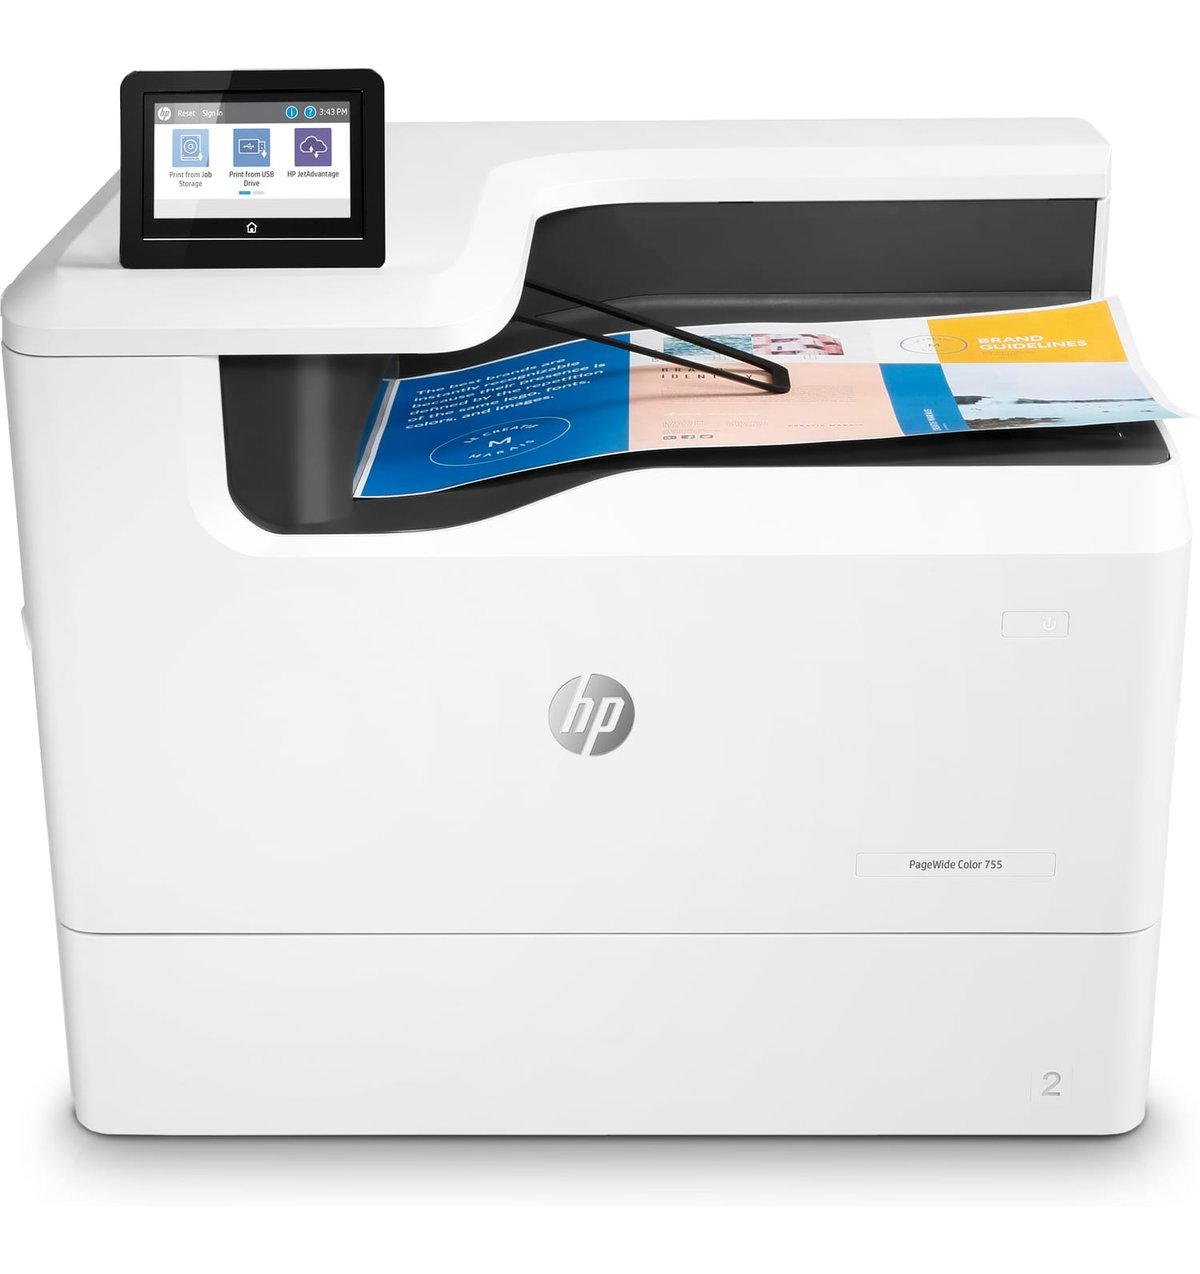 fb58a19e13c HP PageWide 755dn - Color Printer - Inkjet - A3 - USB / Ethernet ...